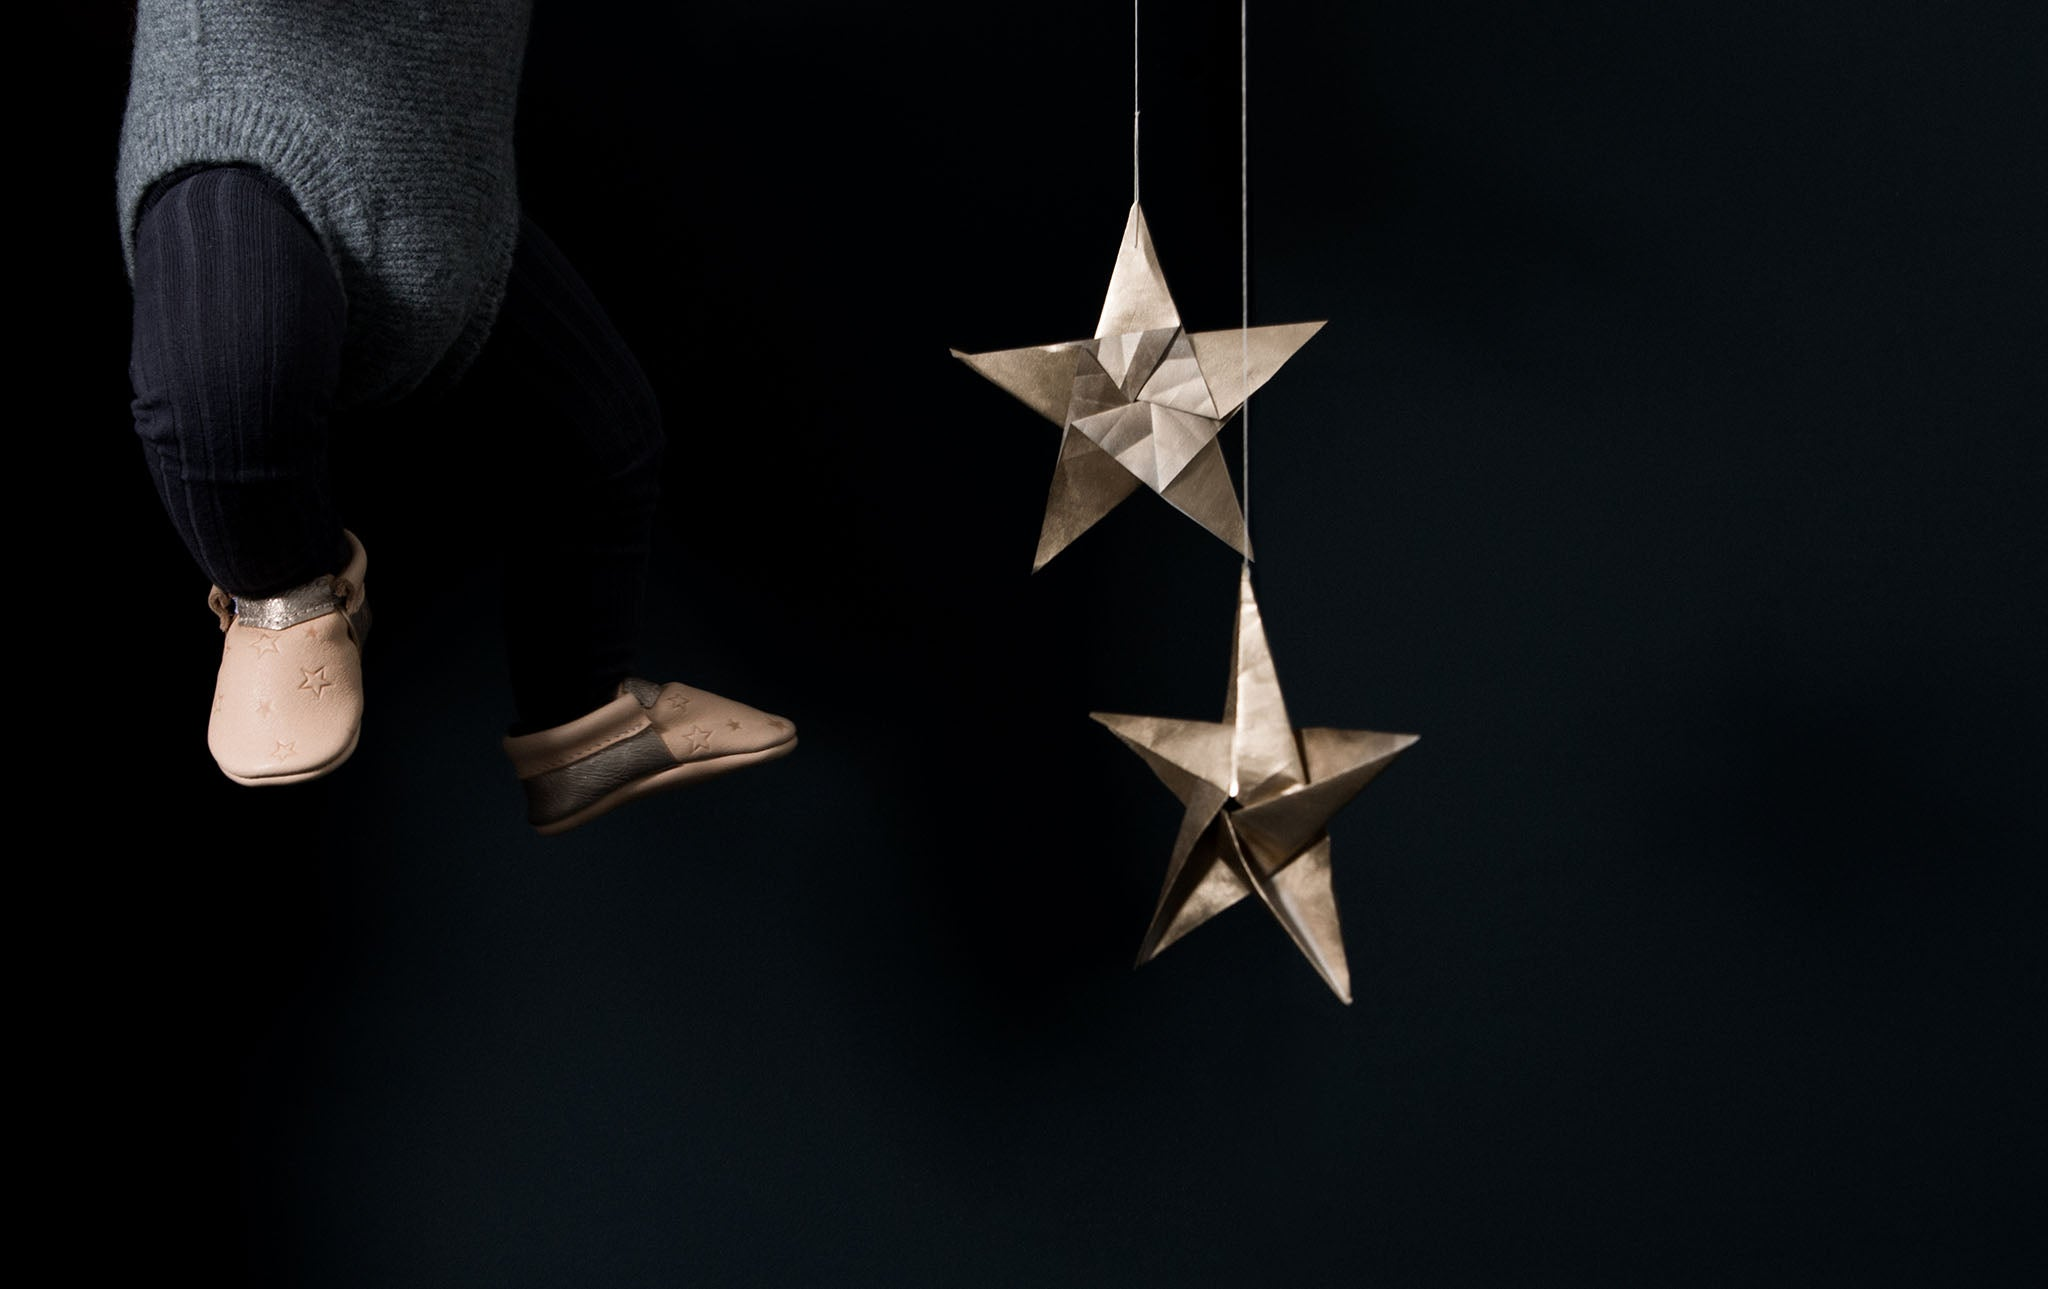 natural stylish baby moccasins with Embossed stars. Exclusives by Amy & Ivor for Cissywears at Liberty London.